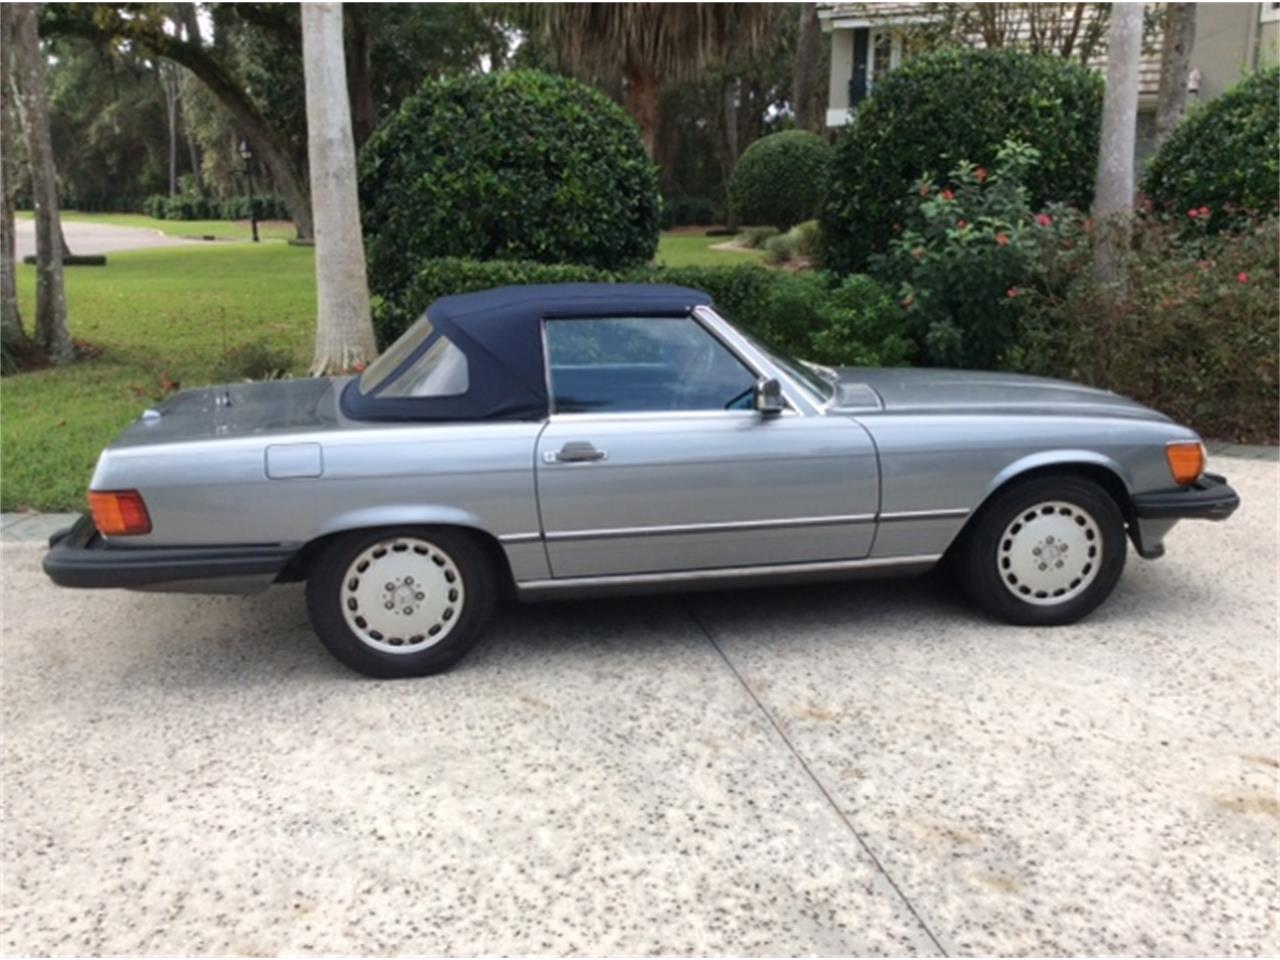 Large Picture of 1989 560SL located in Ponte Vedra Beach Florida - $15,000.00 - G9PN